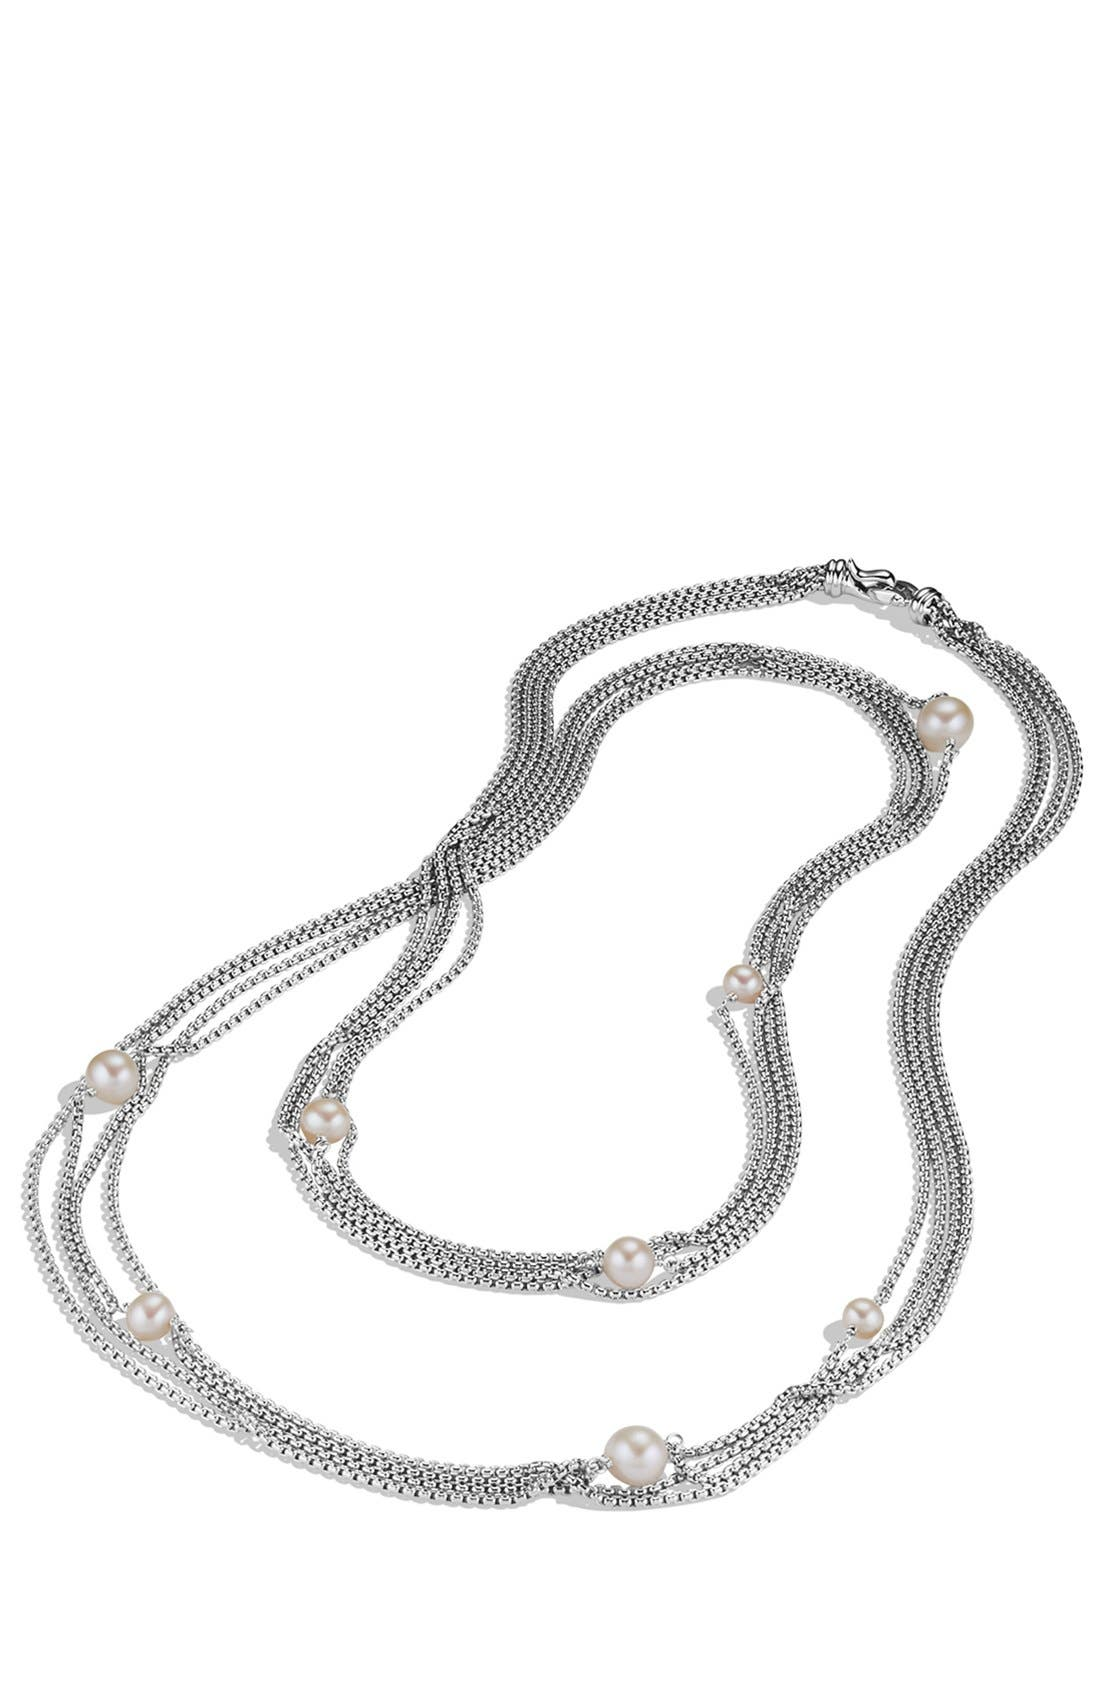 Four-Row Chain Necklace with Pearls,                             Alternate thumbnail 3, color,                             PEARL